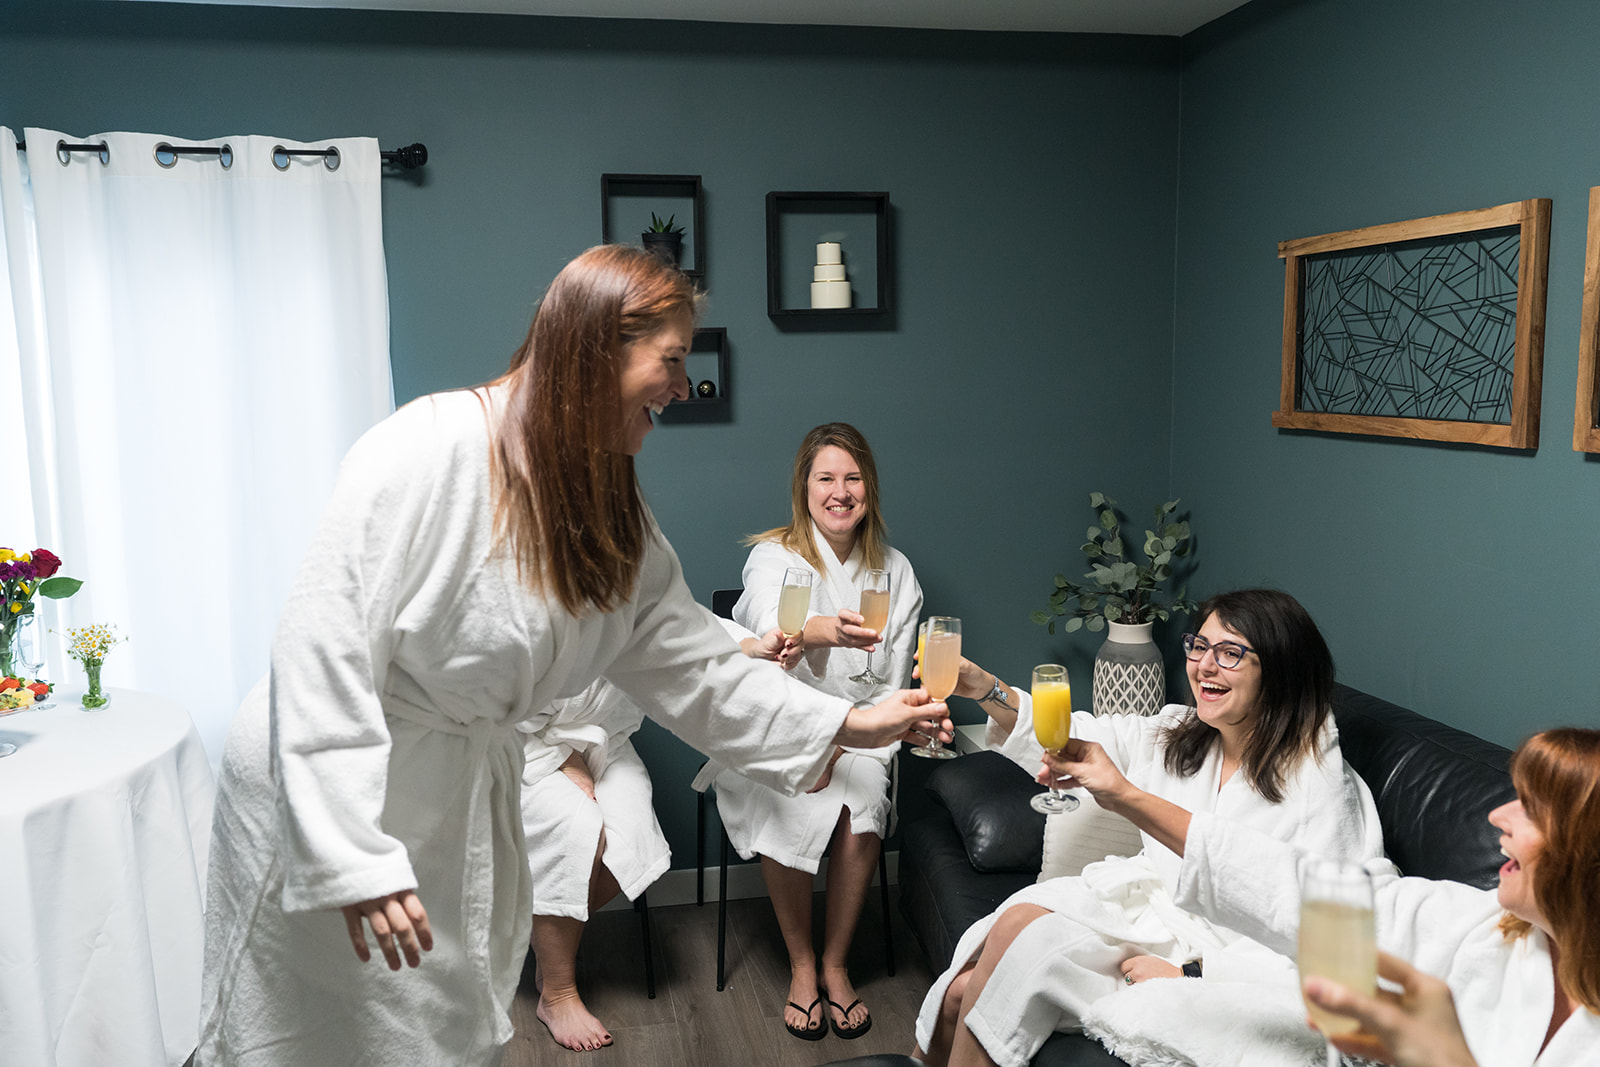 Spa Party Packages for Brides, Graduates, Parents, Mom's Night Out, Sweet 16!